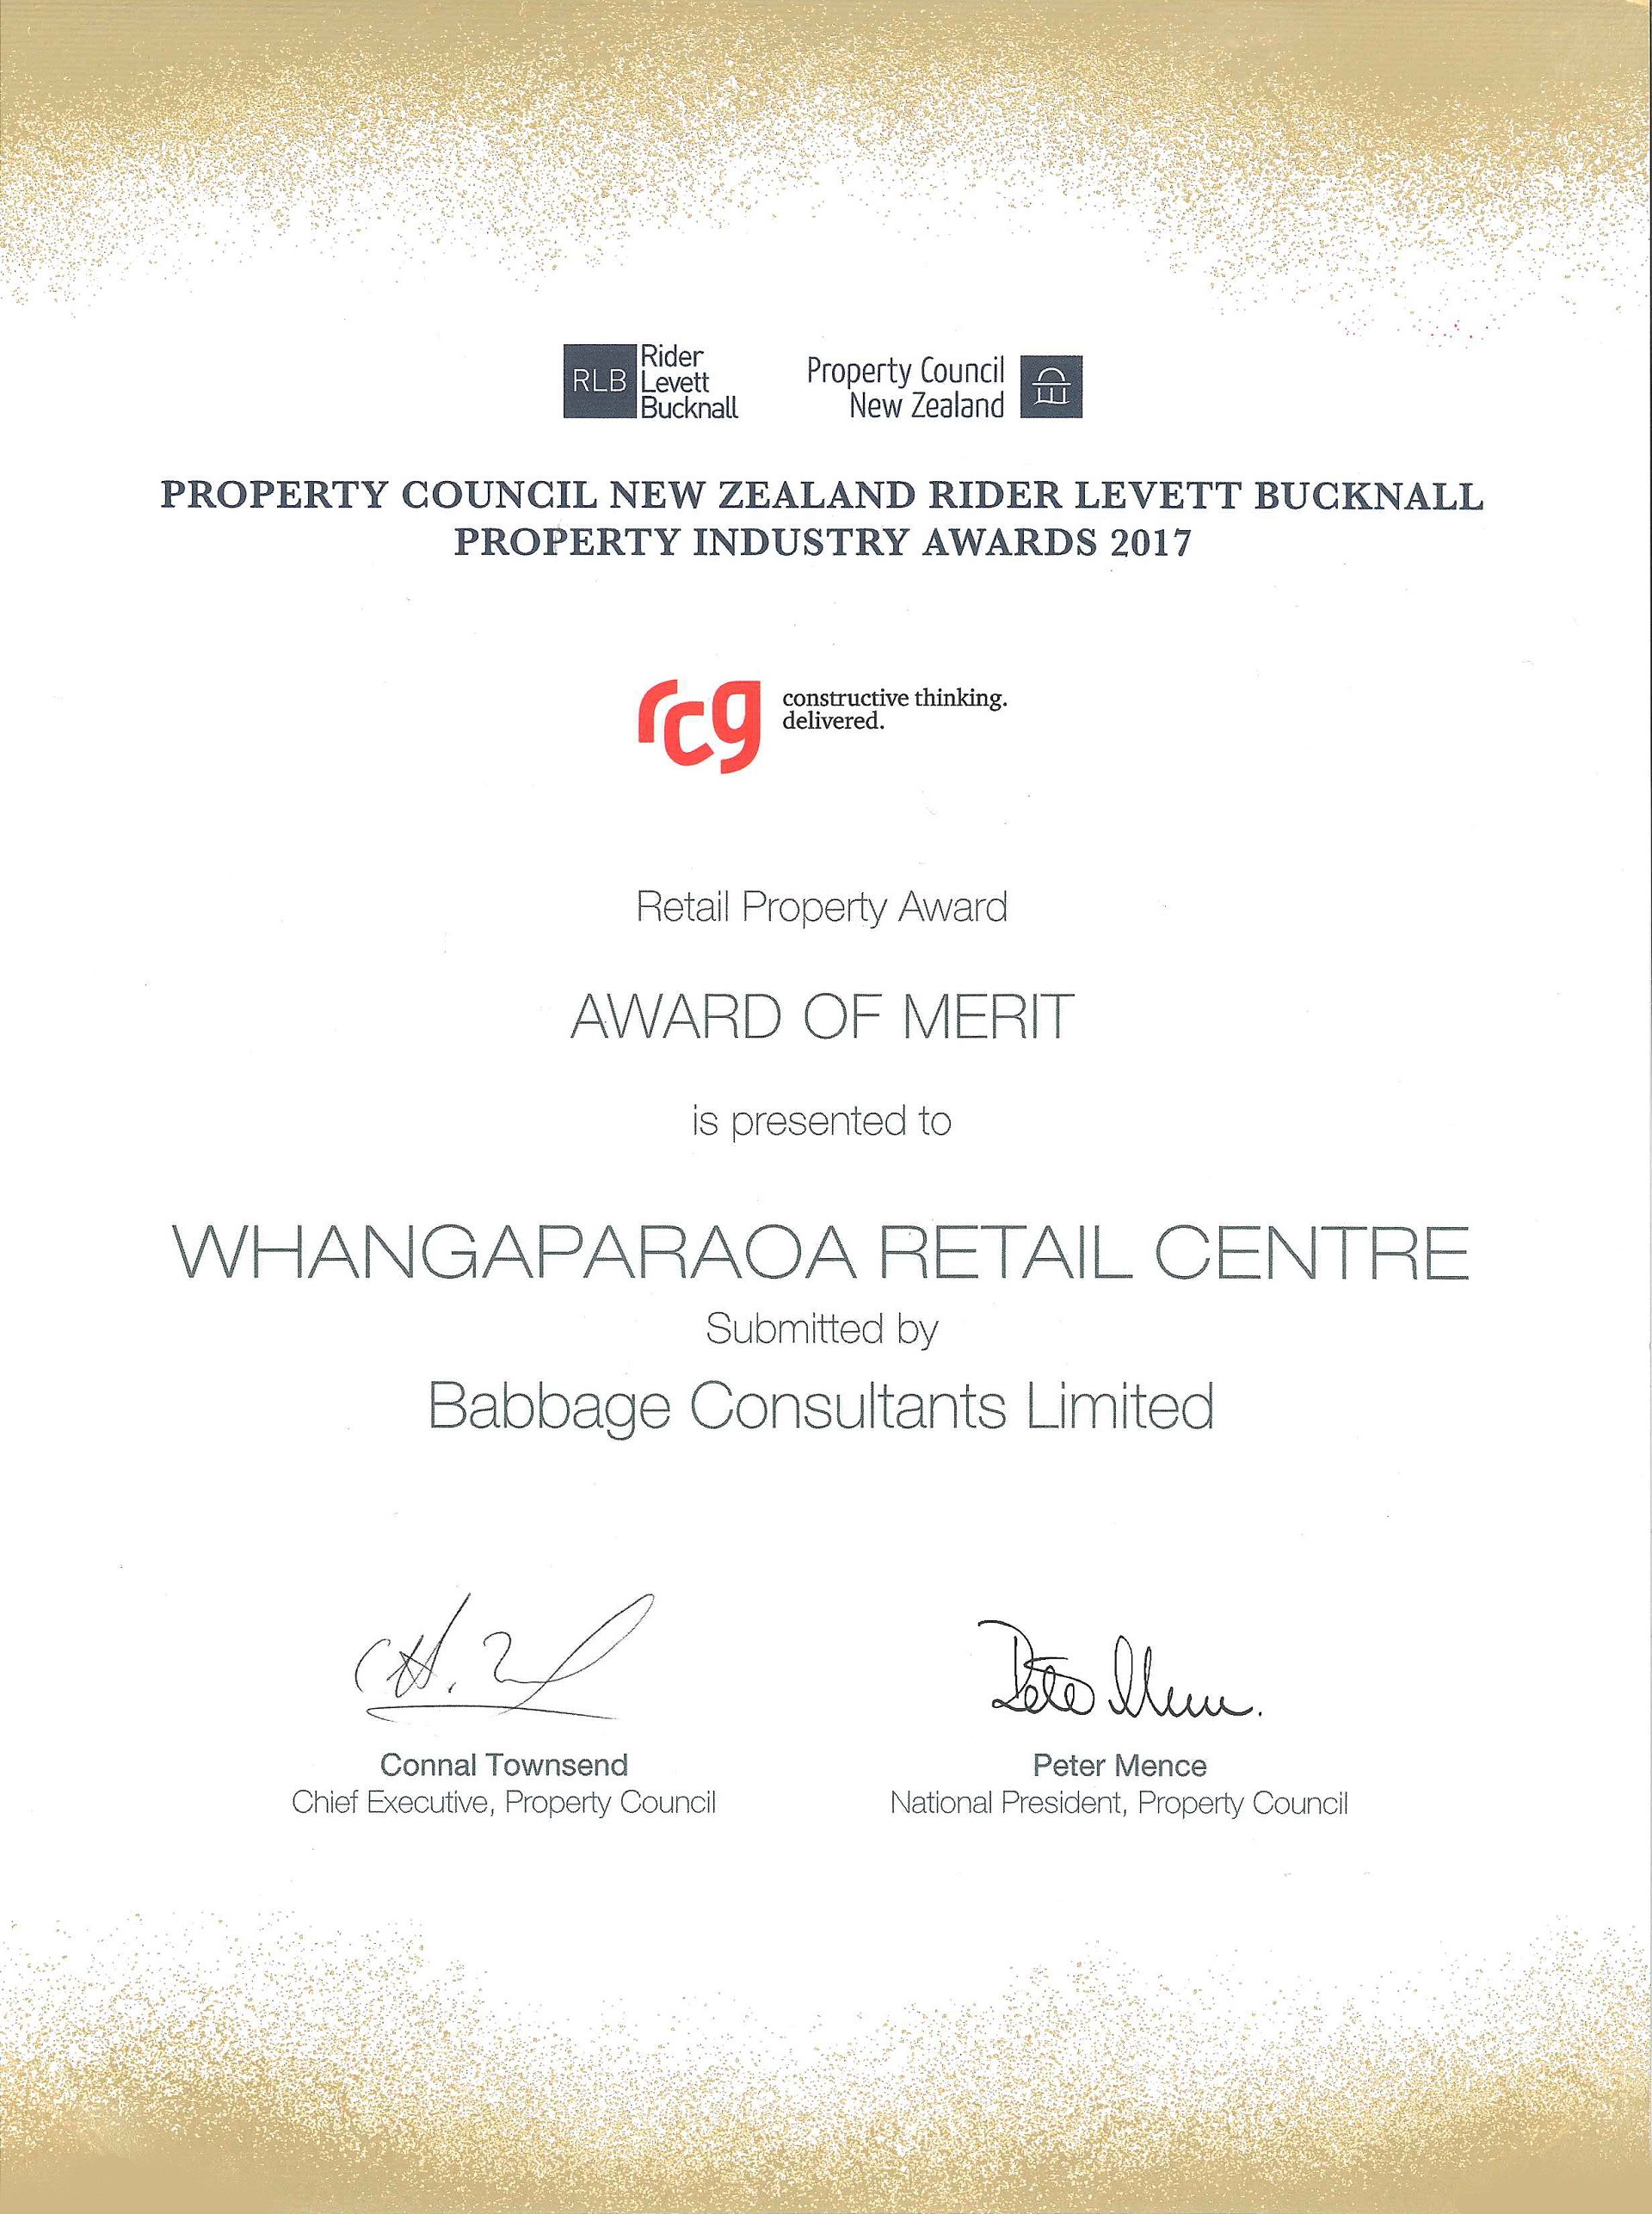 Image Property Council Award of Merit - Whangapaoroa Retail Centre 2017